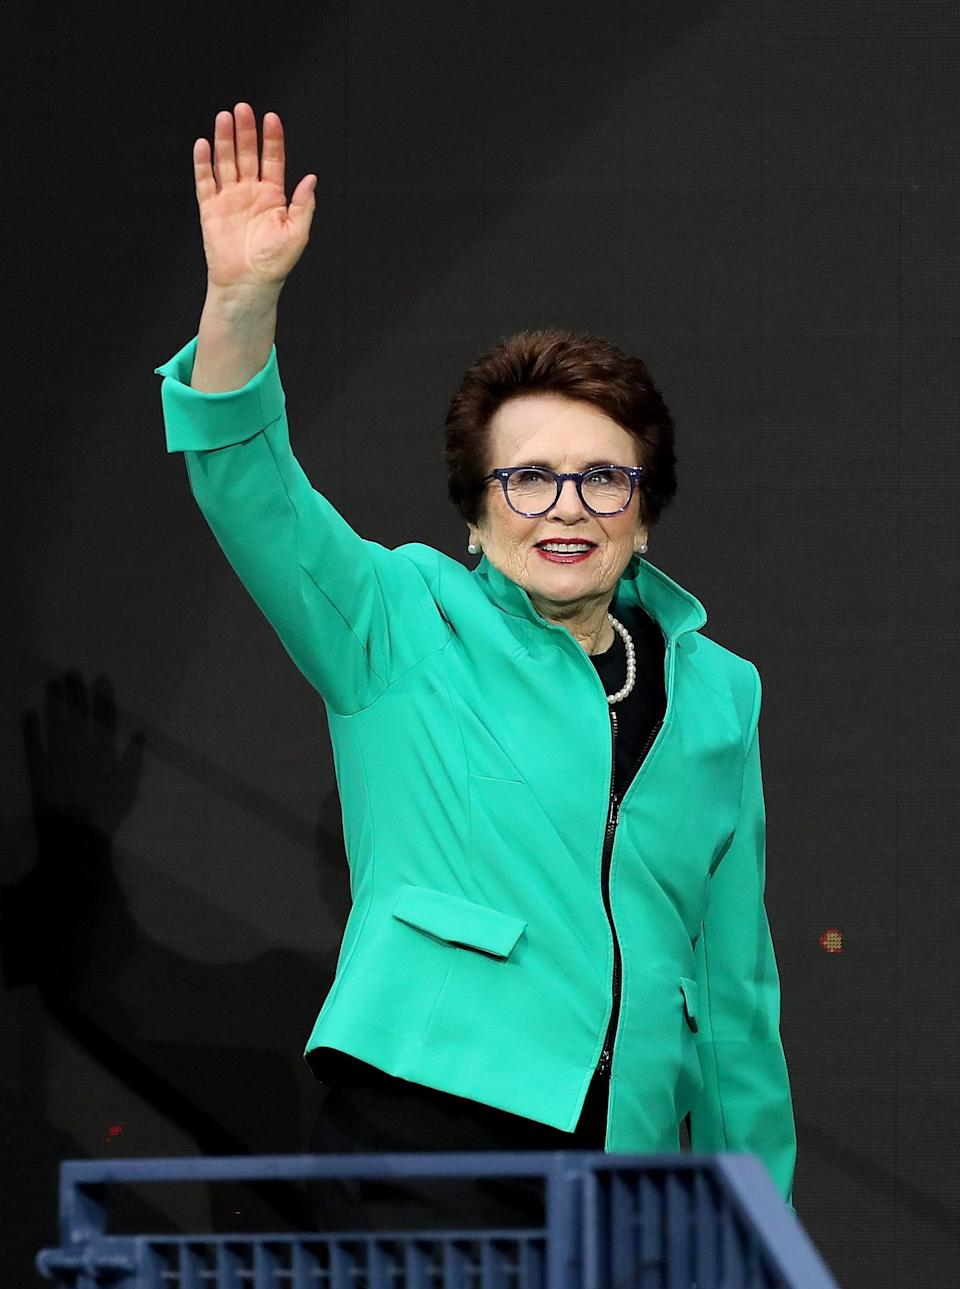 """<p>At 76, Billie Jean King is considered one of the greatest tennis players of all time, but is equally well-known for her work as an activist for gender equality and LGBTQ+ rights.</p> <p>In 1981, King was publicly outed as a lesbian. The experience <a href=""""https://www.nbcnews.com/feature/nbc-out/it-was-horrible-billie-jean-king-recalls-being-publicly-outed-n804451"""" class=""""link rapid-noclick-resp"""" rel=""""nofollow noopener"""" target=""""_blank"""" data-ylk=""""slk:was &quot;horrible"""">was """"horrible</a>,"""" King told NBC News in 2017, adding that her team urged her to deny her sexuality. King refused, saying, """"I'm going to do it. I don't care. This is important to me to tell the truth."""" She said she didn't fully feel comfortable with her sexuality until age 51, but added that if she could change anything about her experiences, it would only be this: """"I'd come out earlier.""""</p>"""